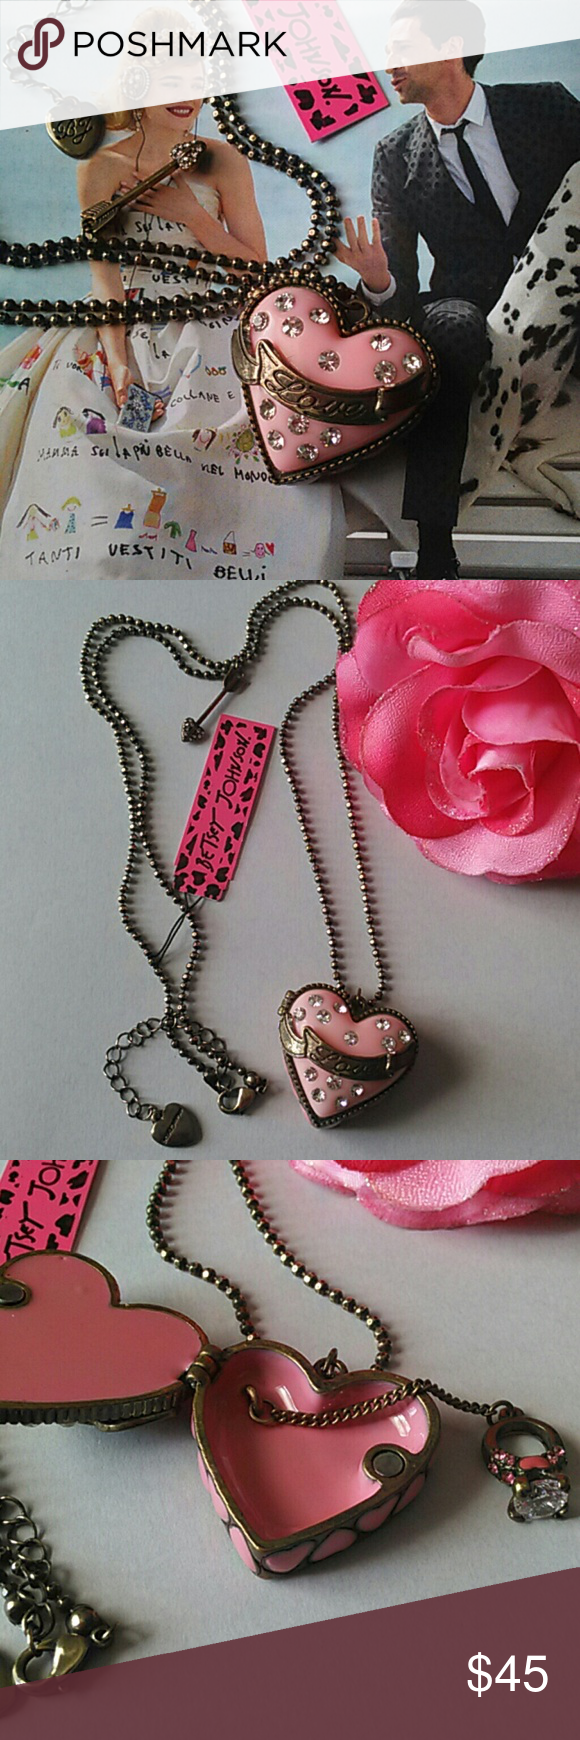 """BJ Heart Locket Necklace Beautiful sentiment of giving your heart! Awesome gift for a man to give his woman on Valentines, Anniversary or any special occasions. It has a crystal ring inside with hearts on it too! A arrow charm with crystals hangs from the chain. So many gift ideas with this one.  LOCKET IS 1 1/8"""" LONG & 1 1/2"""" IN WIDTH Betsey Johnson Jewelry Necklaces"""